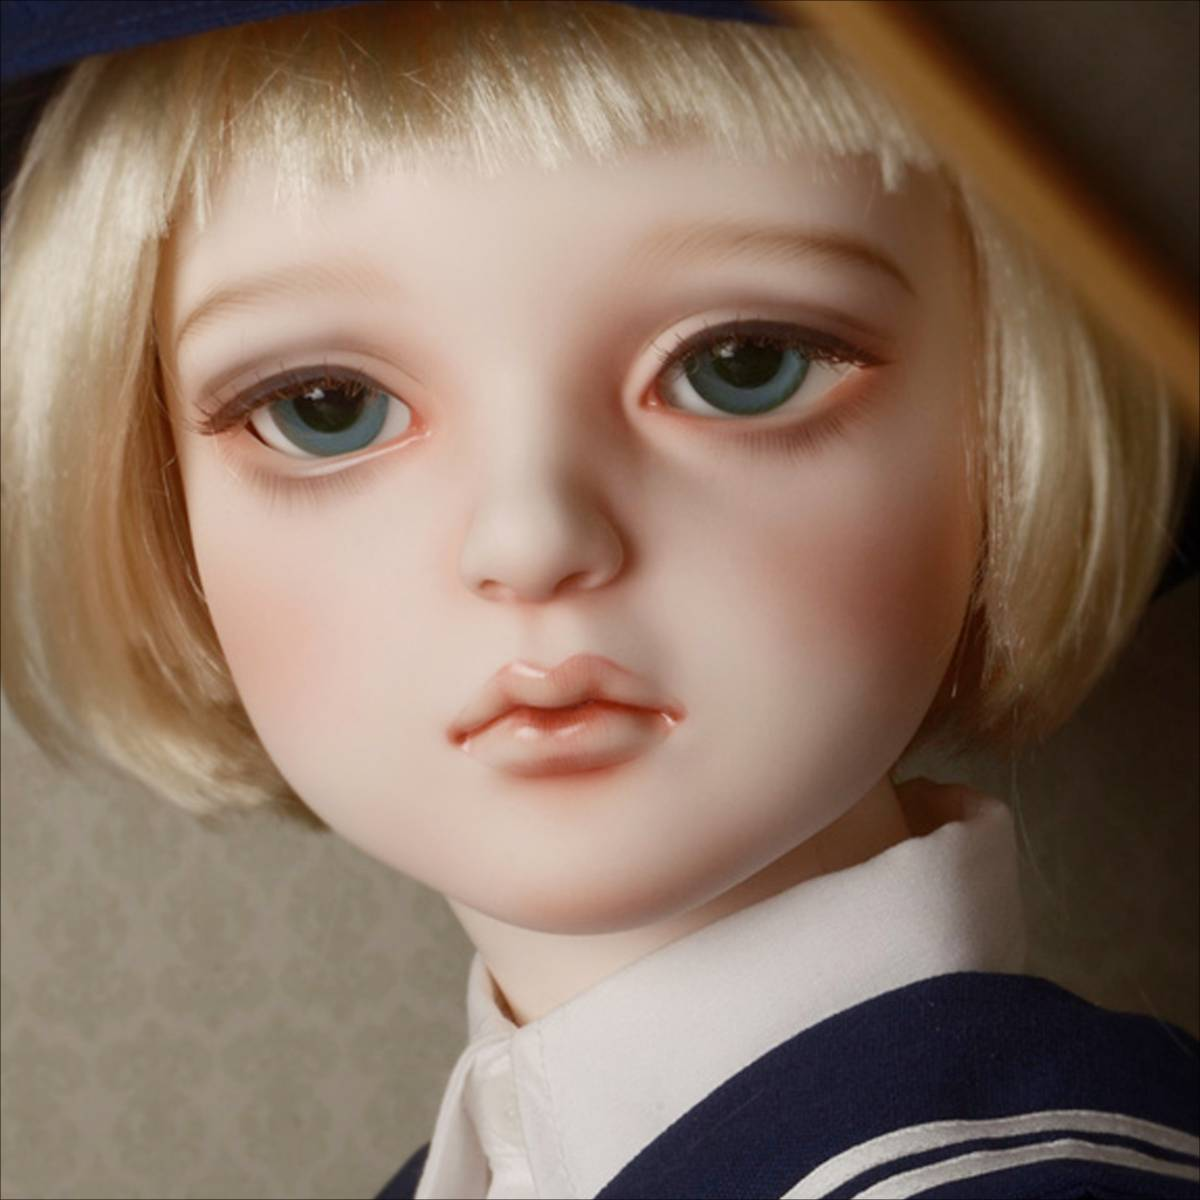 送料無料[Dollmore] 球体関節人形 Lusion Boy - Little Lord Fauntleroy Pino - LE10_画像1